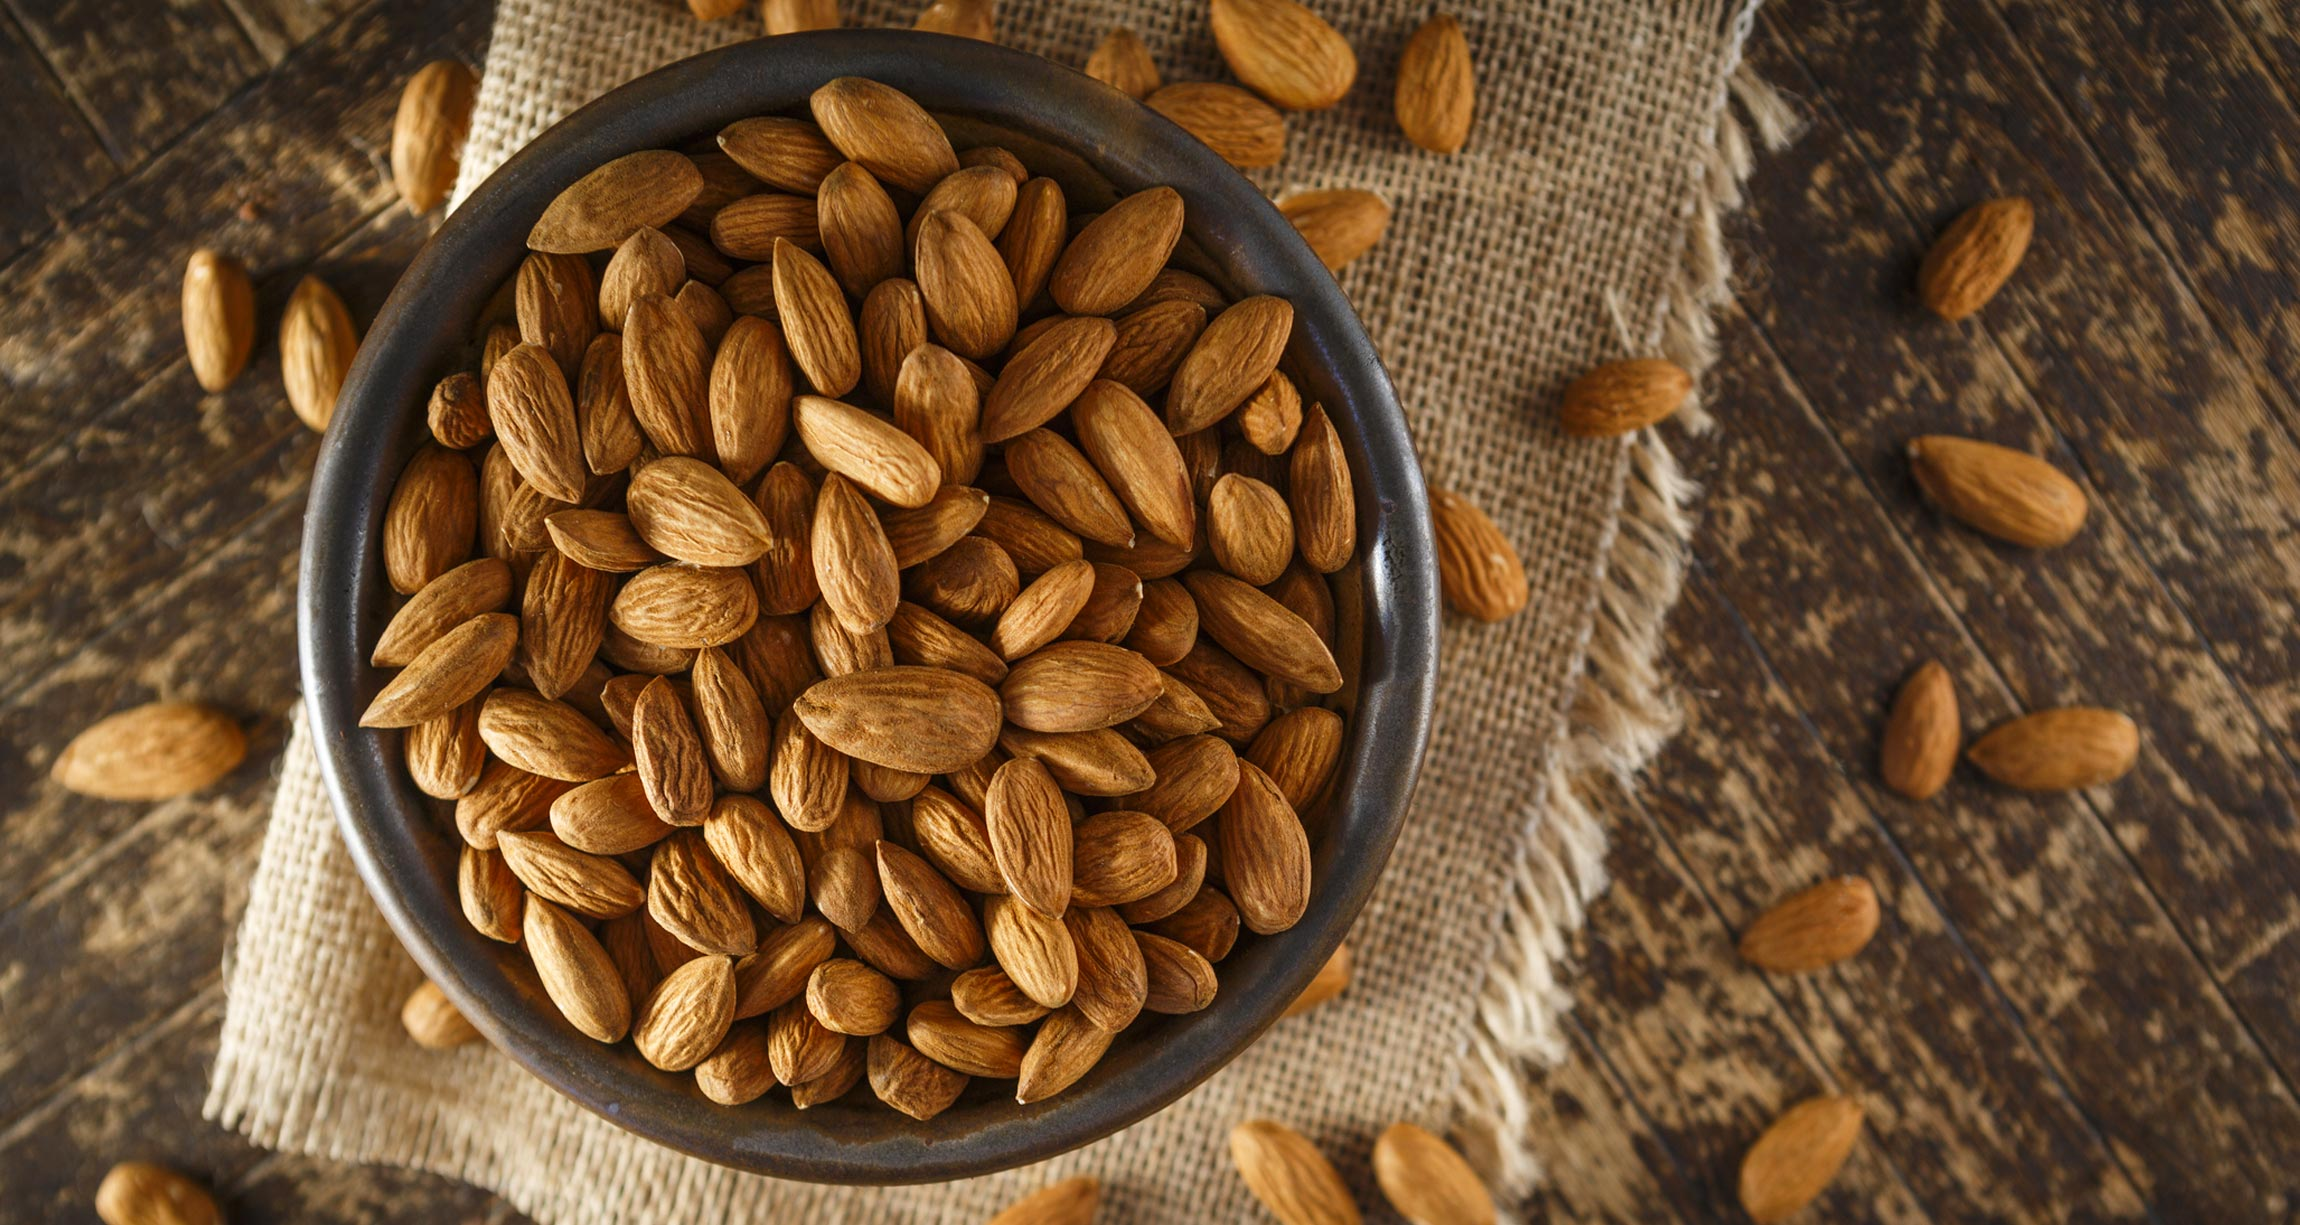 Are Almonds Good for You? Why You Should Start Eating At Least 15 Almonds Daily to Prevent Top Diseases and Health Challenges